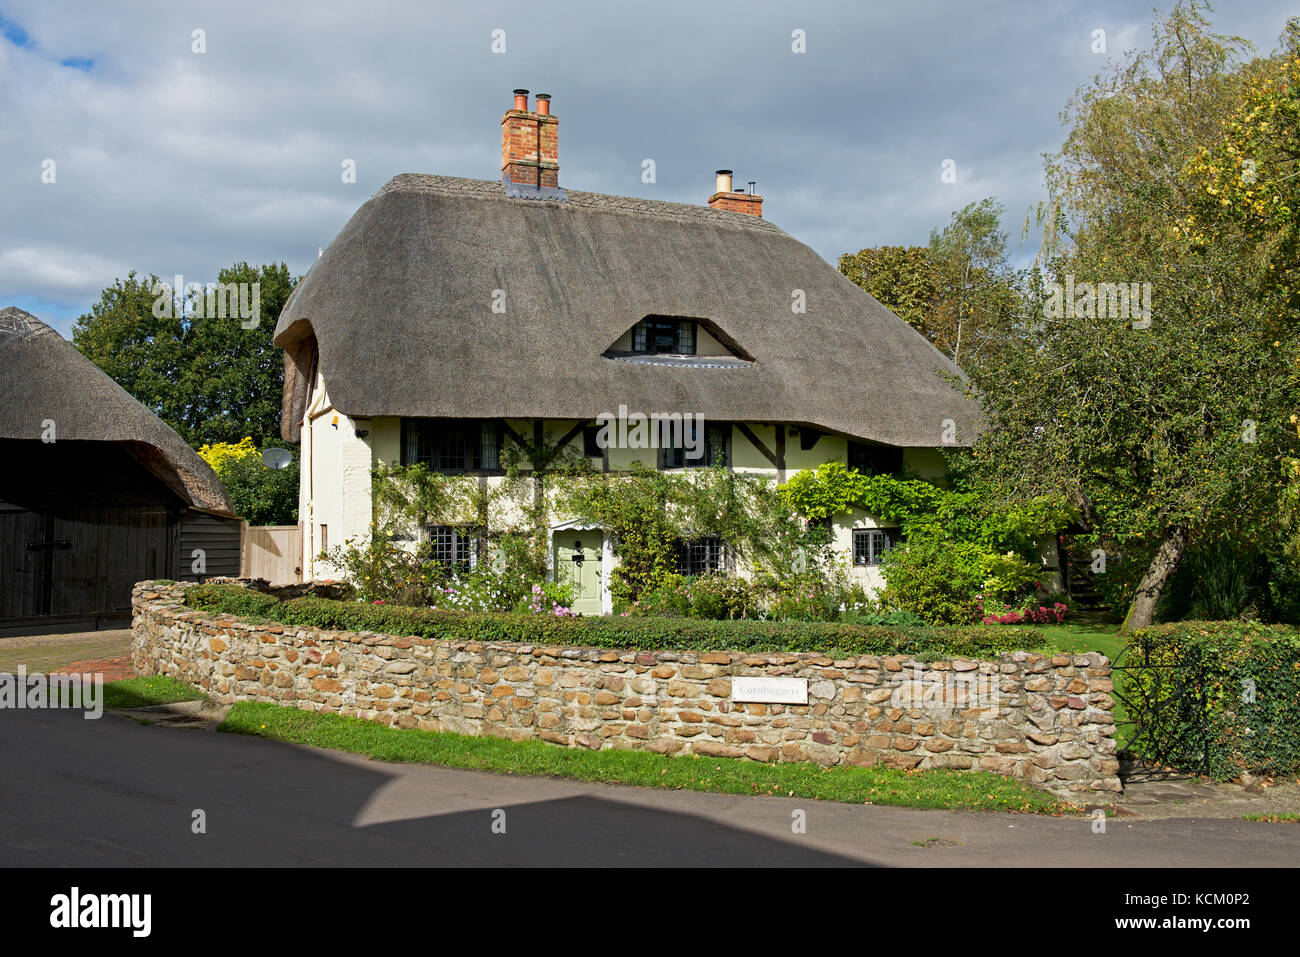 Thatched cottage in the village of East Garston, Berkshire, England UK - Stock Image